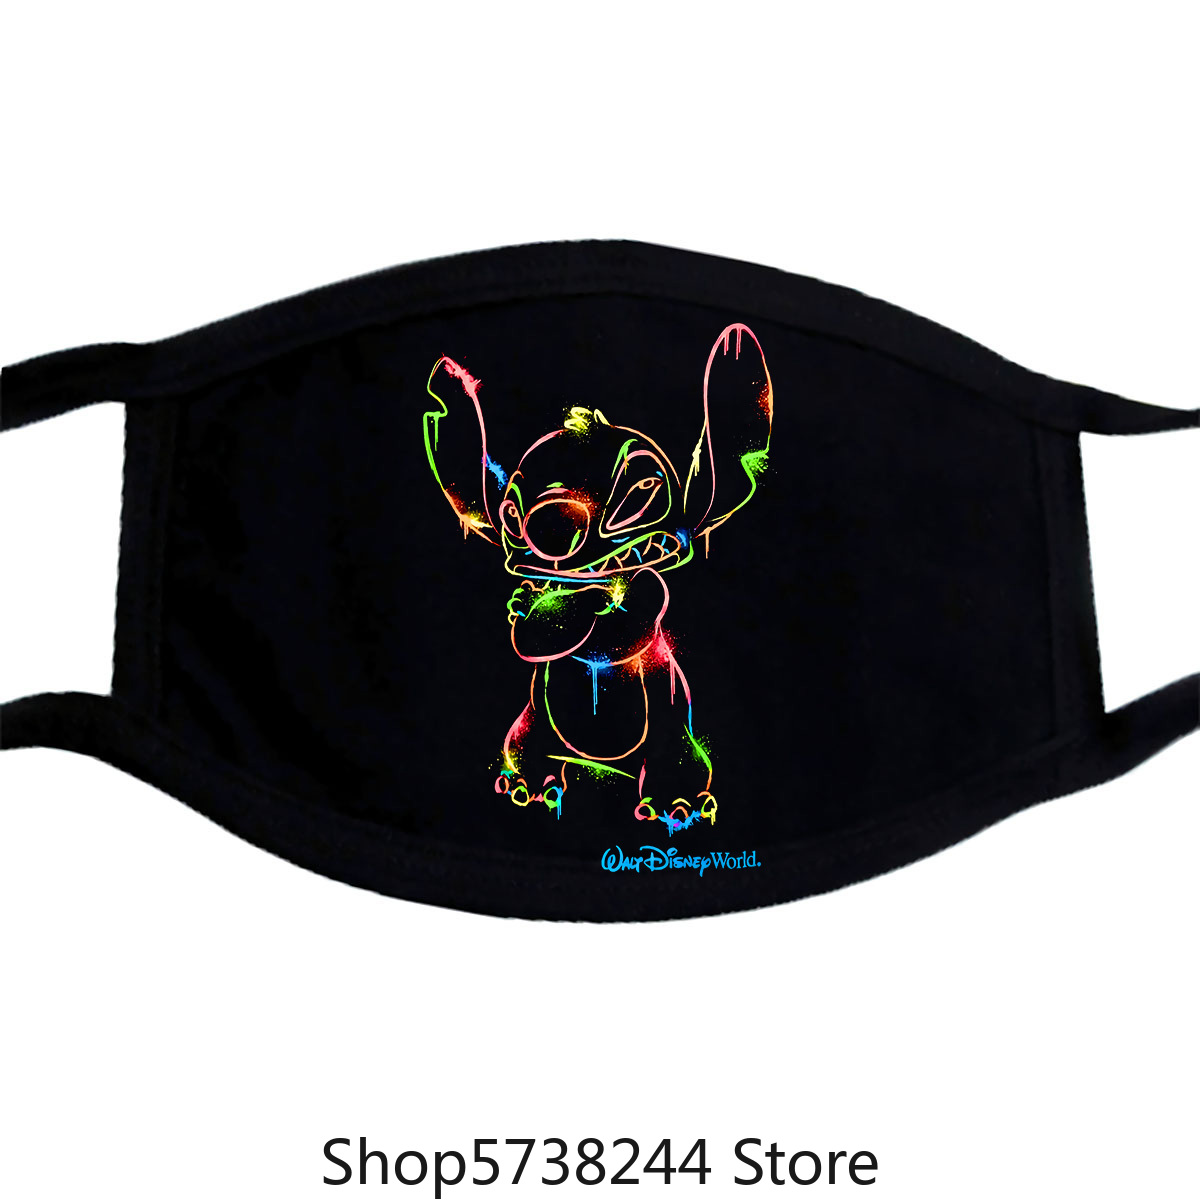 Neon Print (Lilo &) Stitch Land Mask, Xl Washable Reusable Mask For Unisex Black